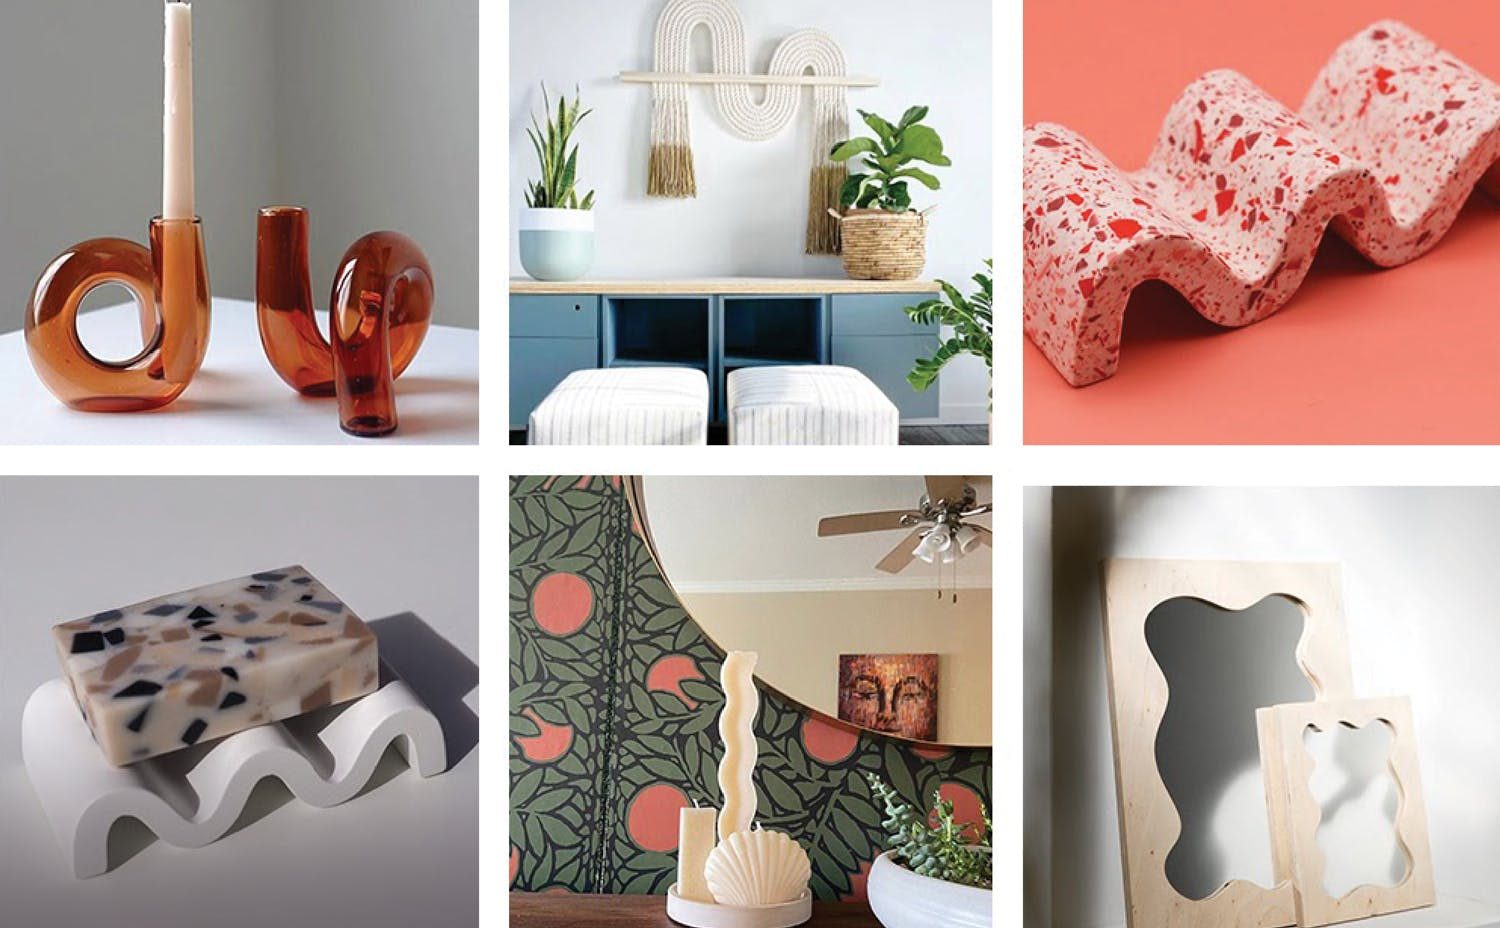 Squiggly-line-inspired candle holders, soap trays, and picture frames